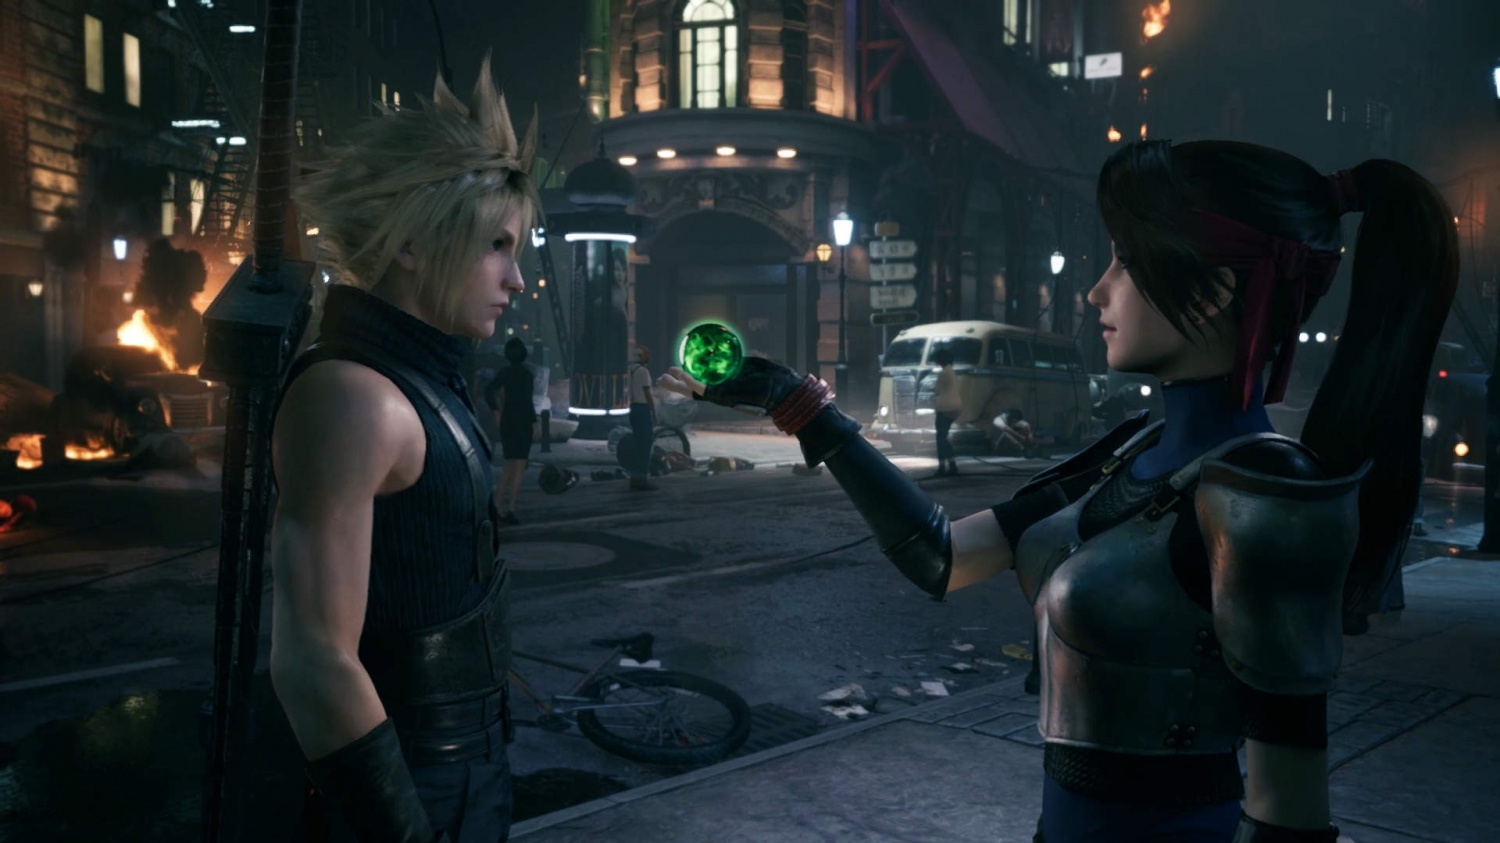 Square Enix says that even though some regions are getting Final Fantasy VII Remake early, they aren't going to move up the digital release date screenshot